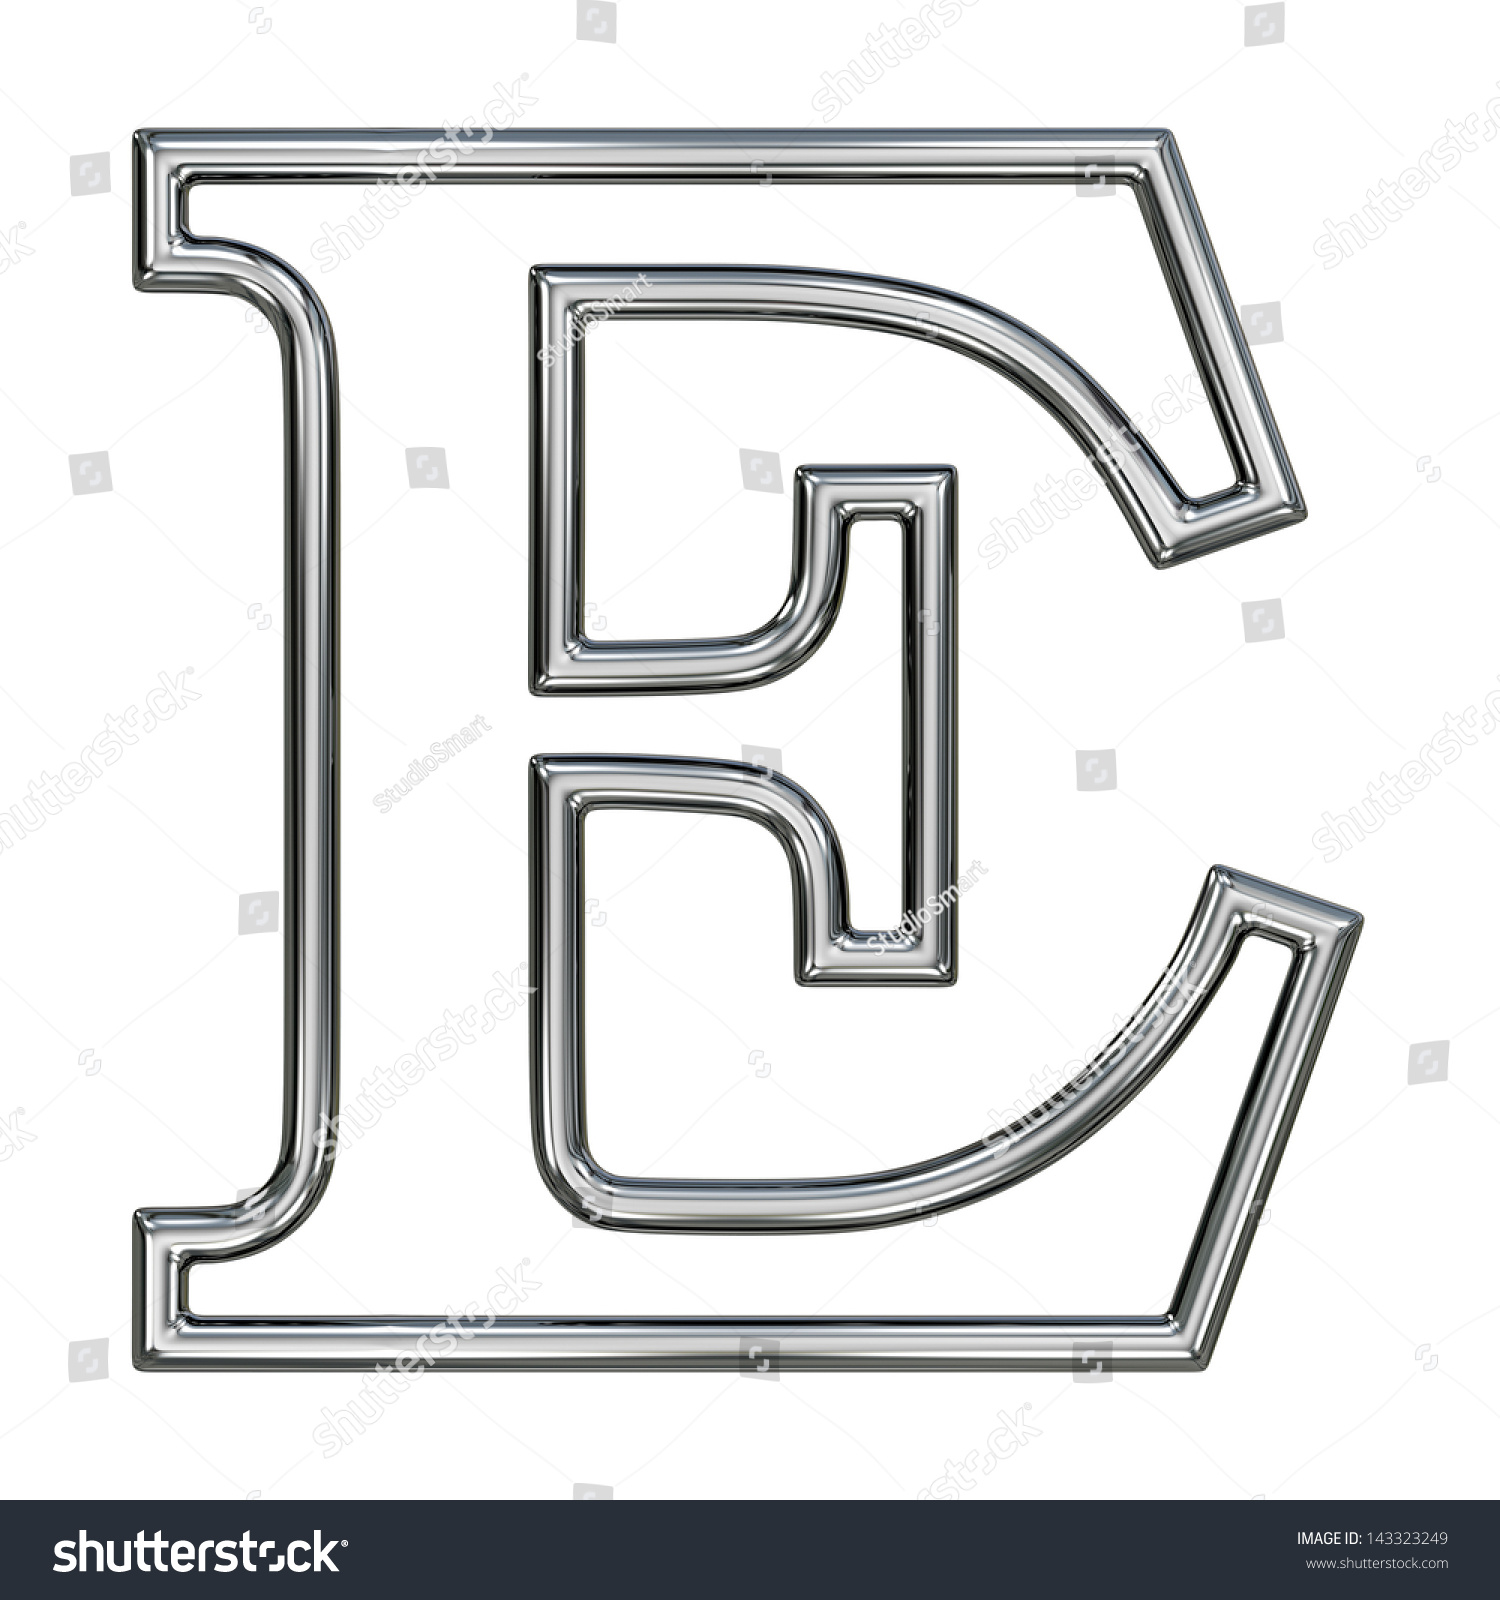 Royalty Free Stock Illustration of Alphabet Symbol E Chrome Pipe